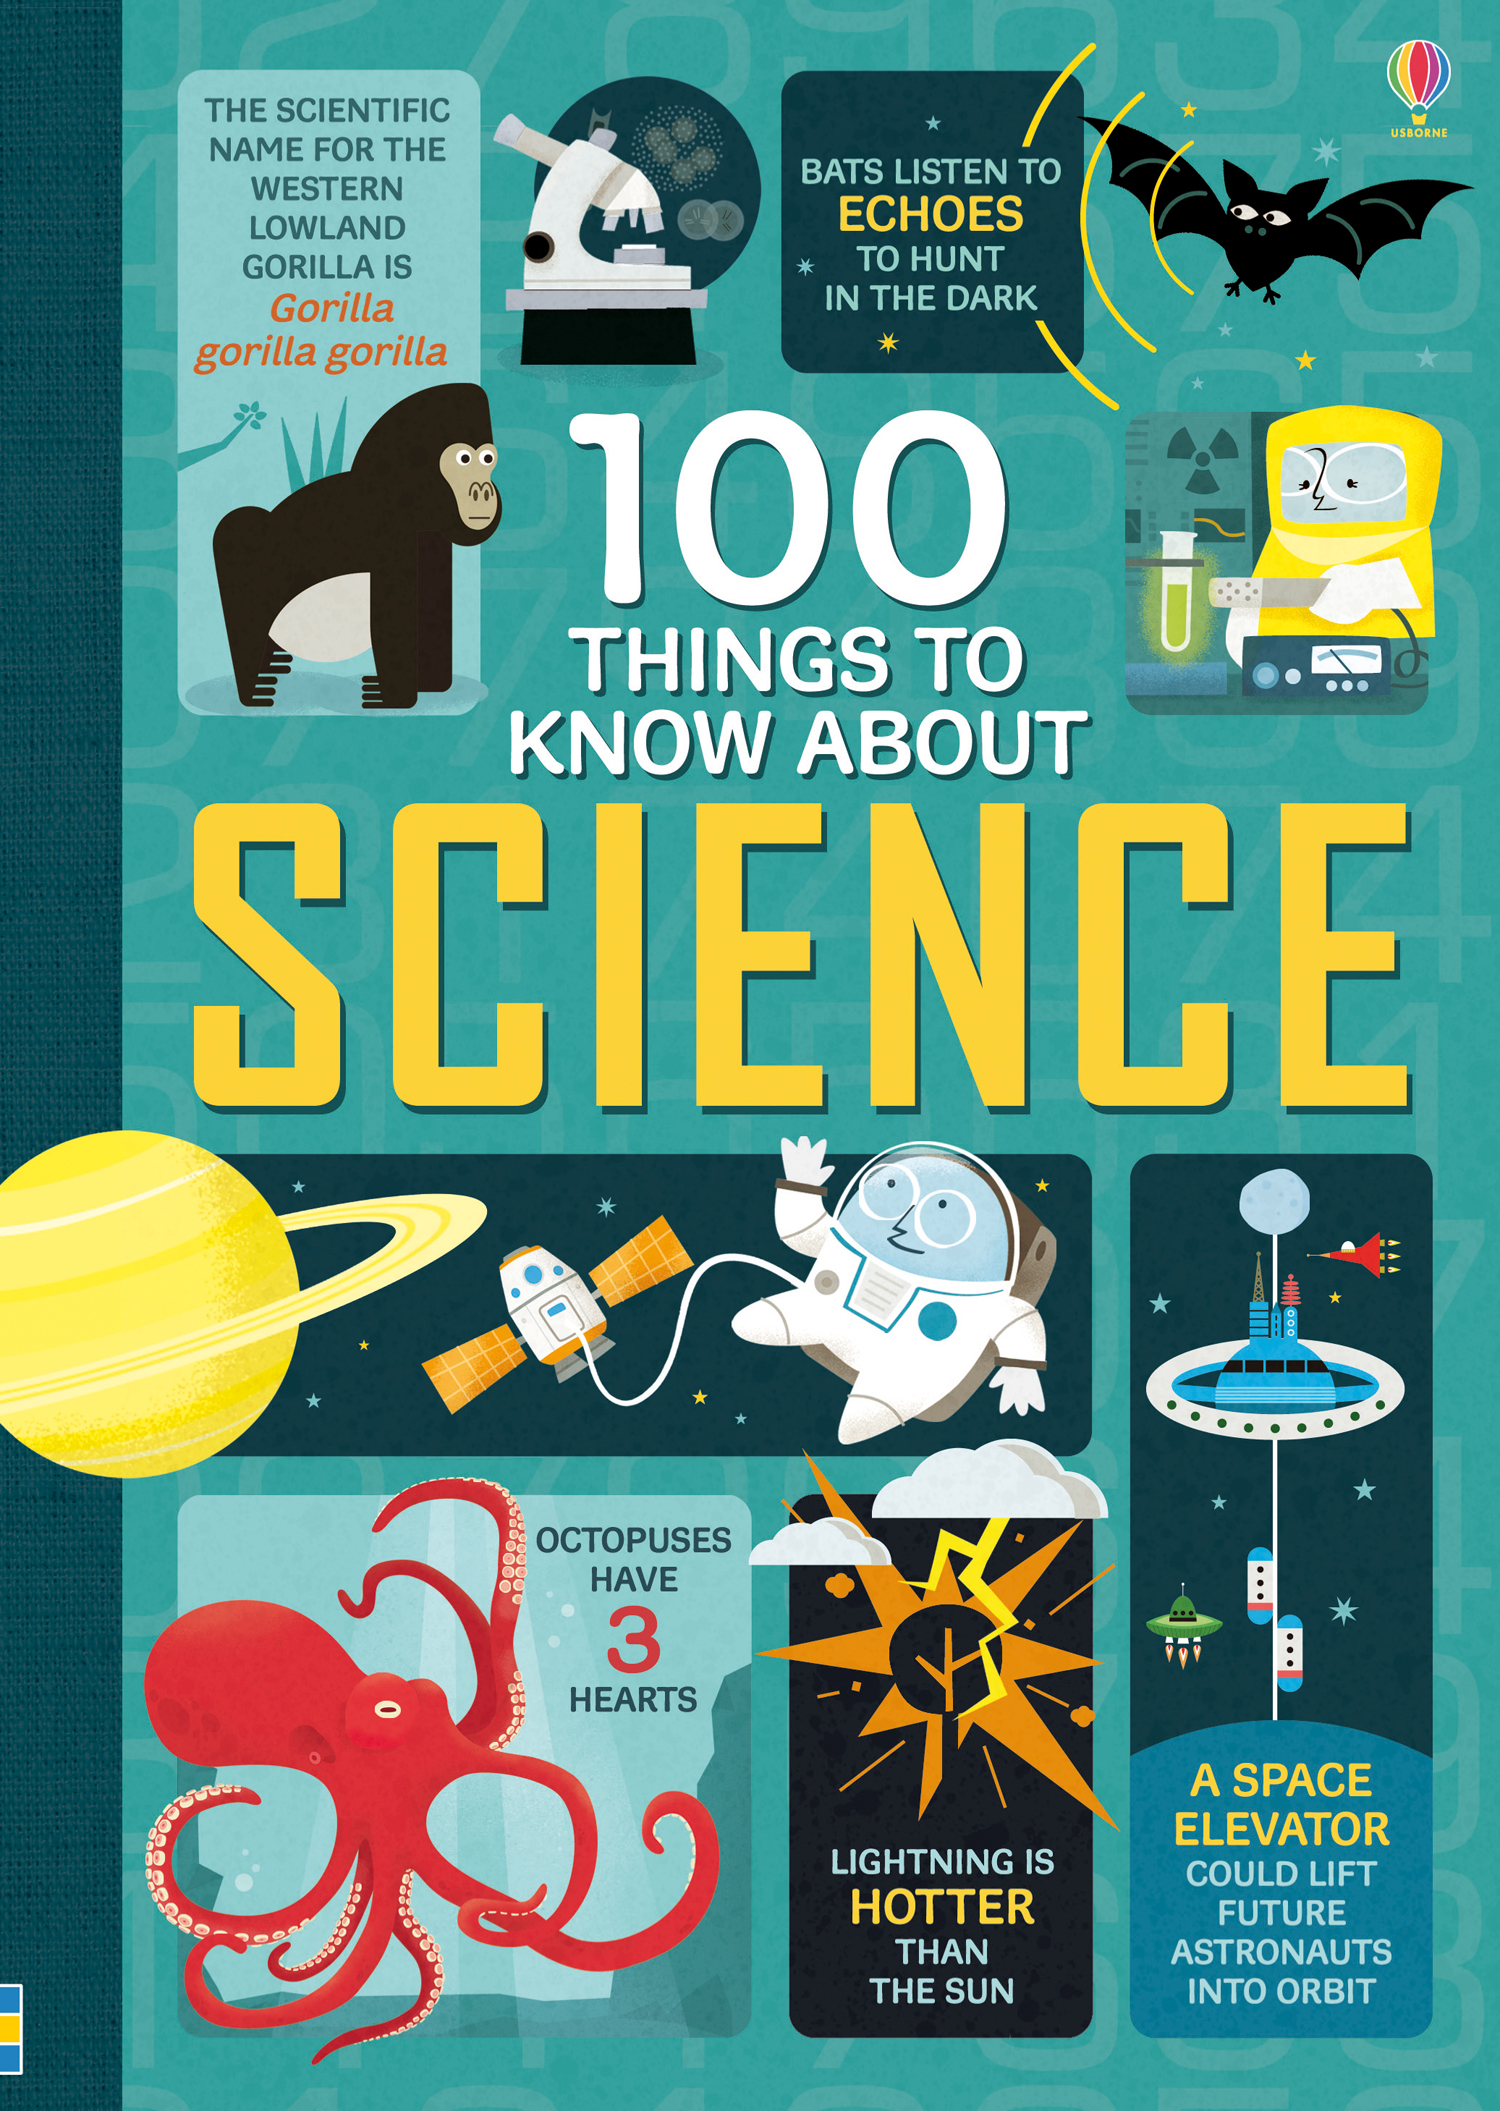 Science pdf of encyclopedia projects